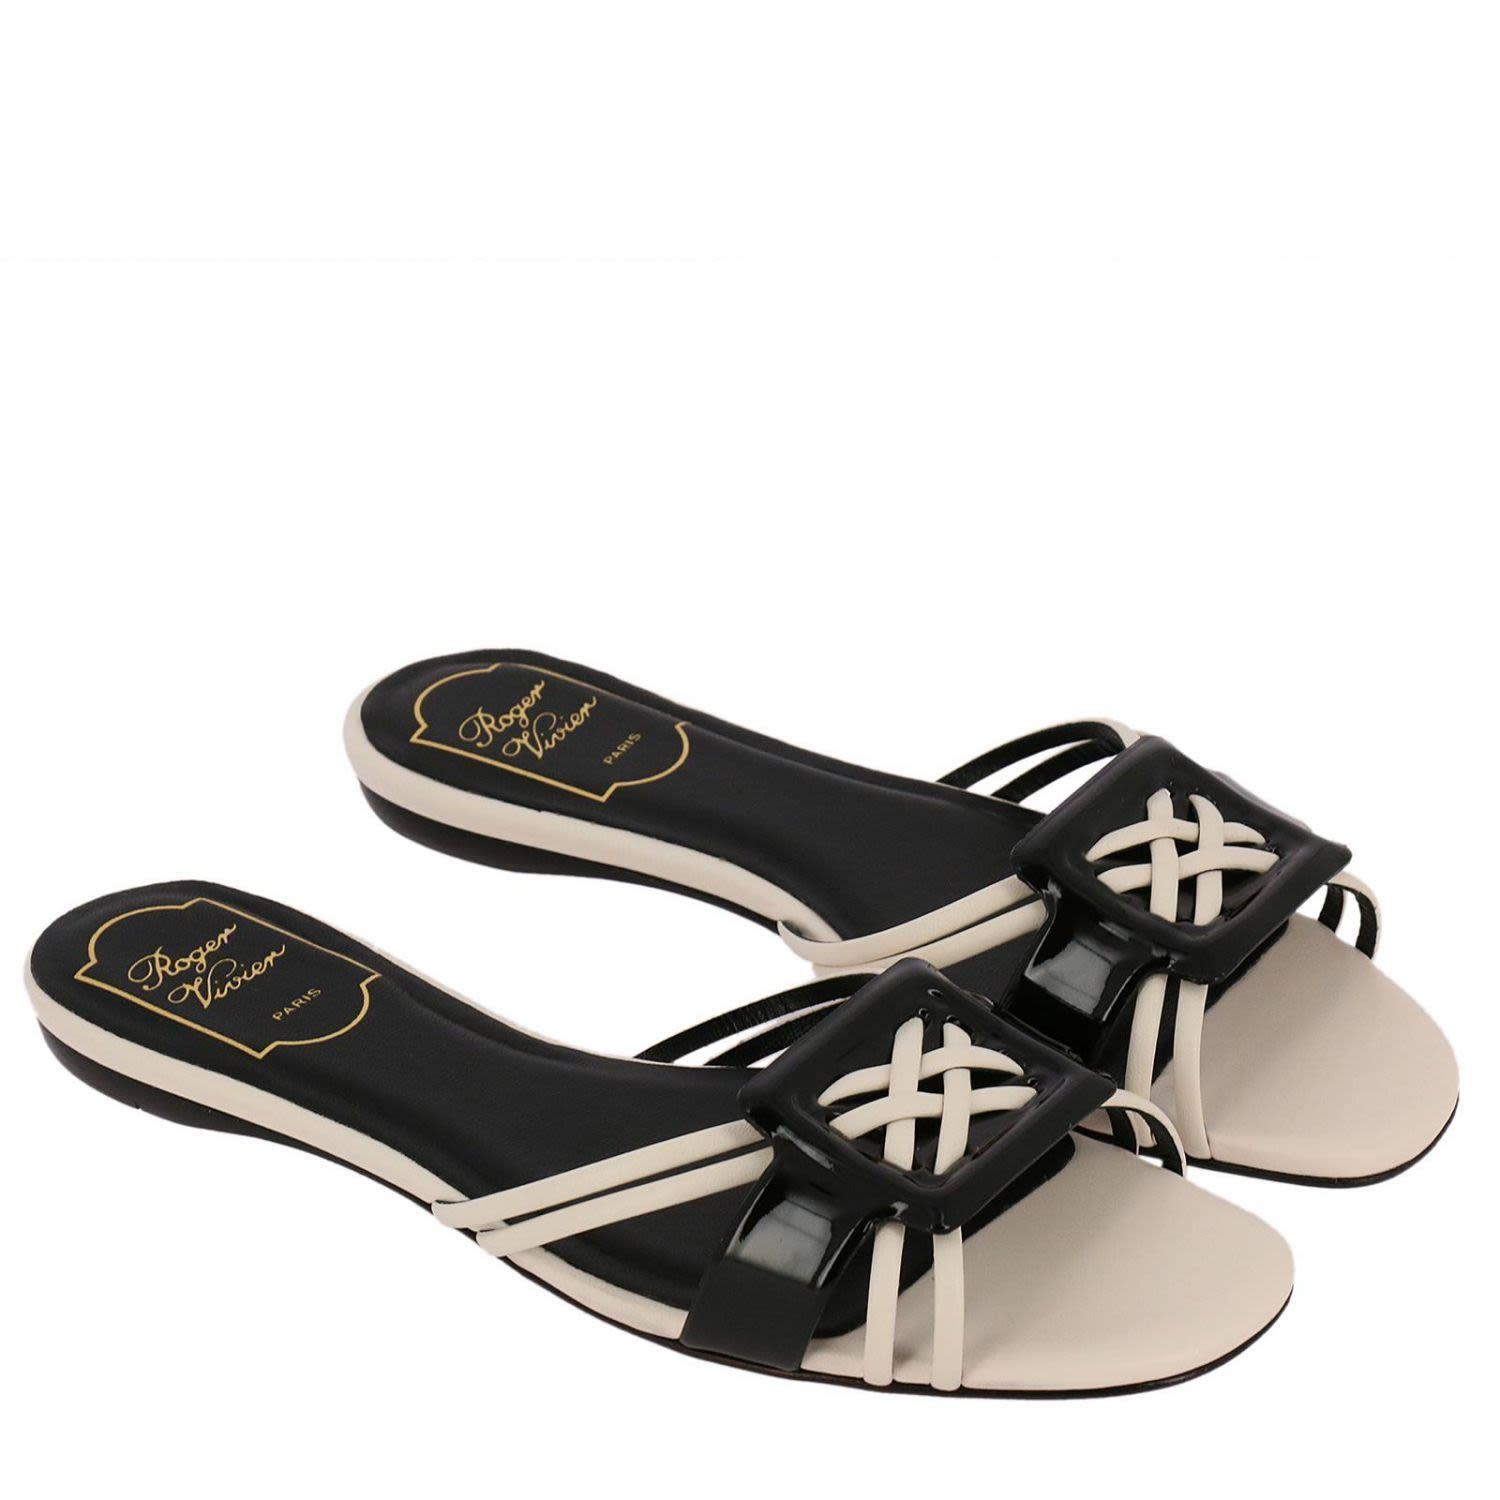 d7197a70a93f ROGER VIVIER FLAT SANDALS SHOES WOMEN ROGER VIVIER.  rogervivier  shoes     rogervivierflats